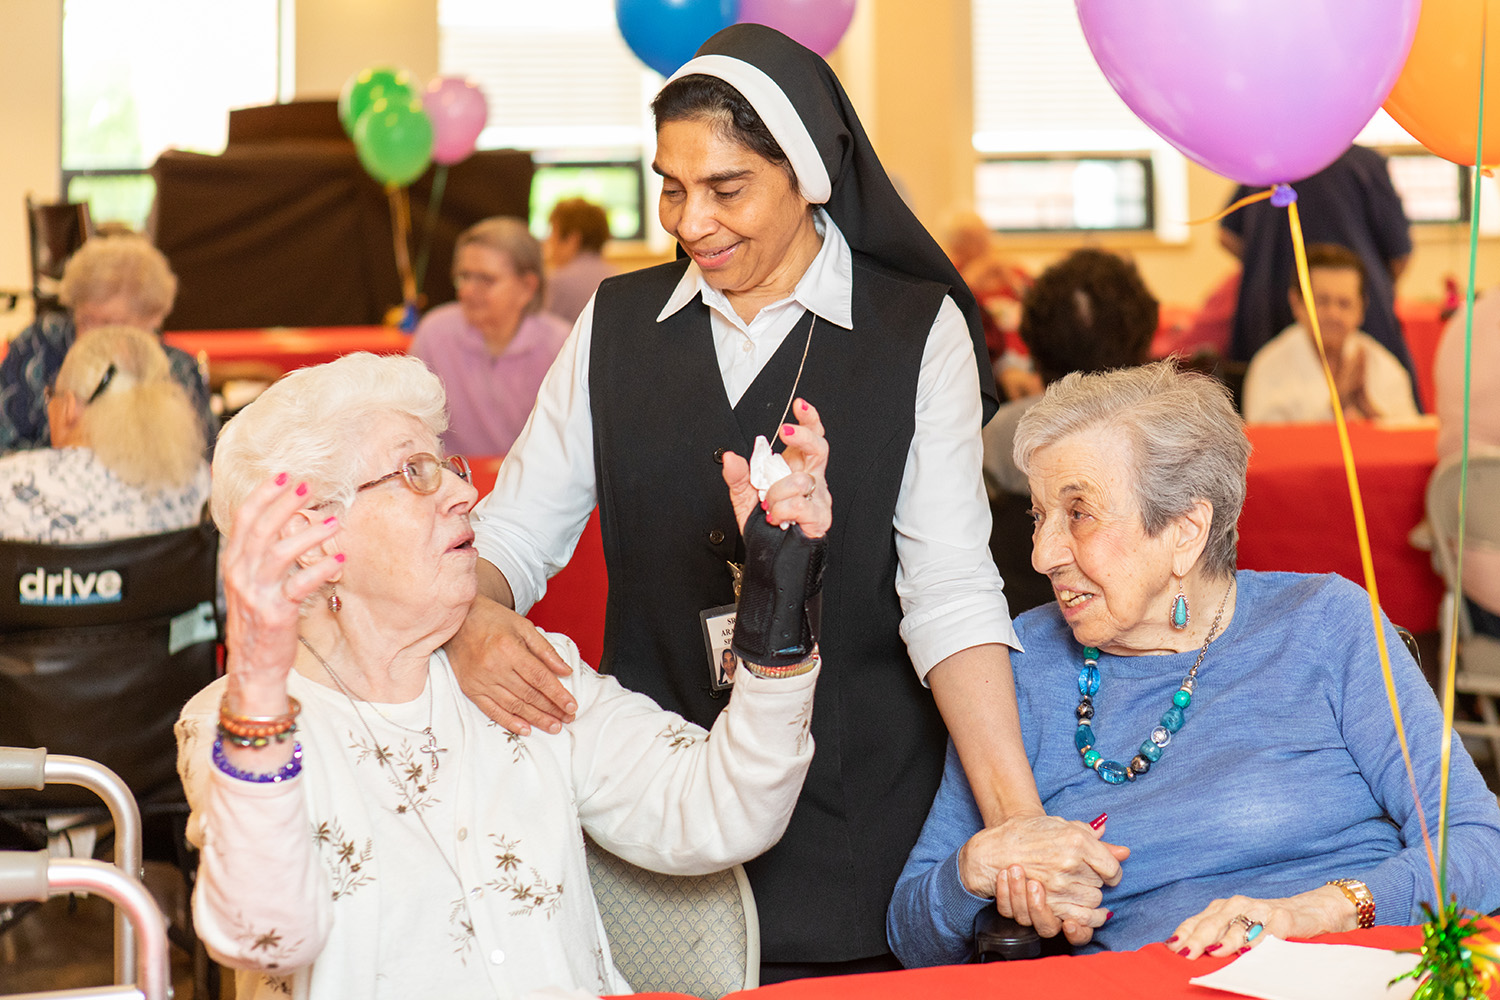 A nun holding a happy conversation with two female senior patients at a social gathering.